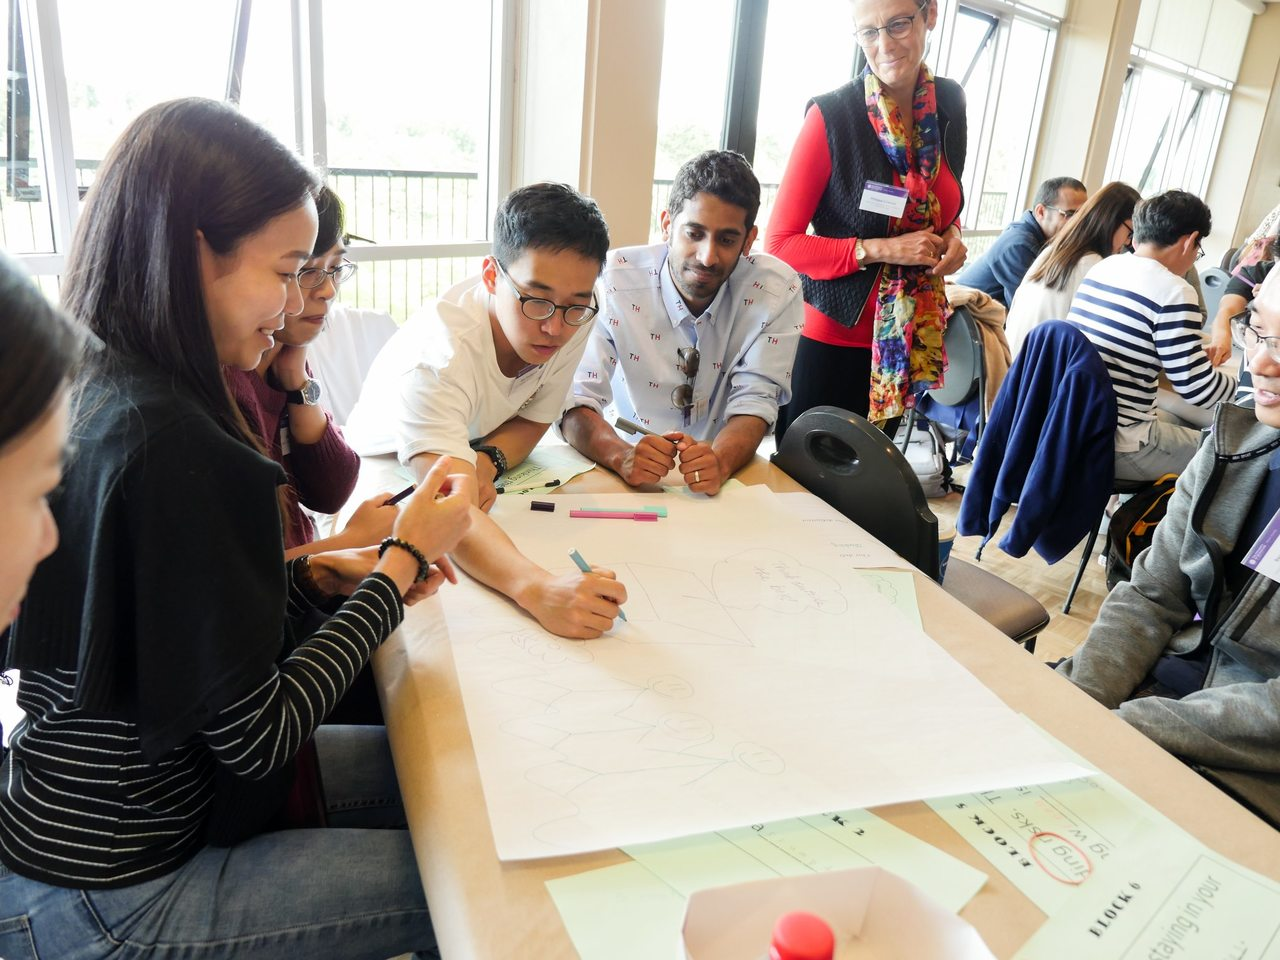 Youth, Learning, Community, Design, Event, Organism, Student, Adaptation, Collaboration, Education, Conversation